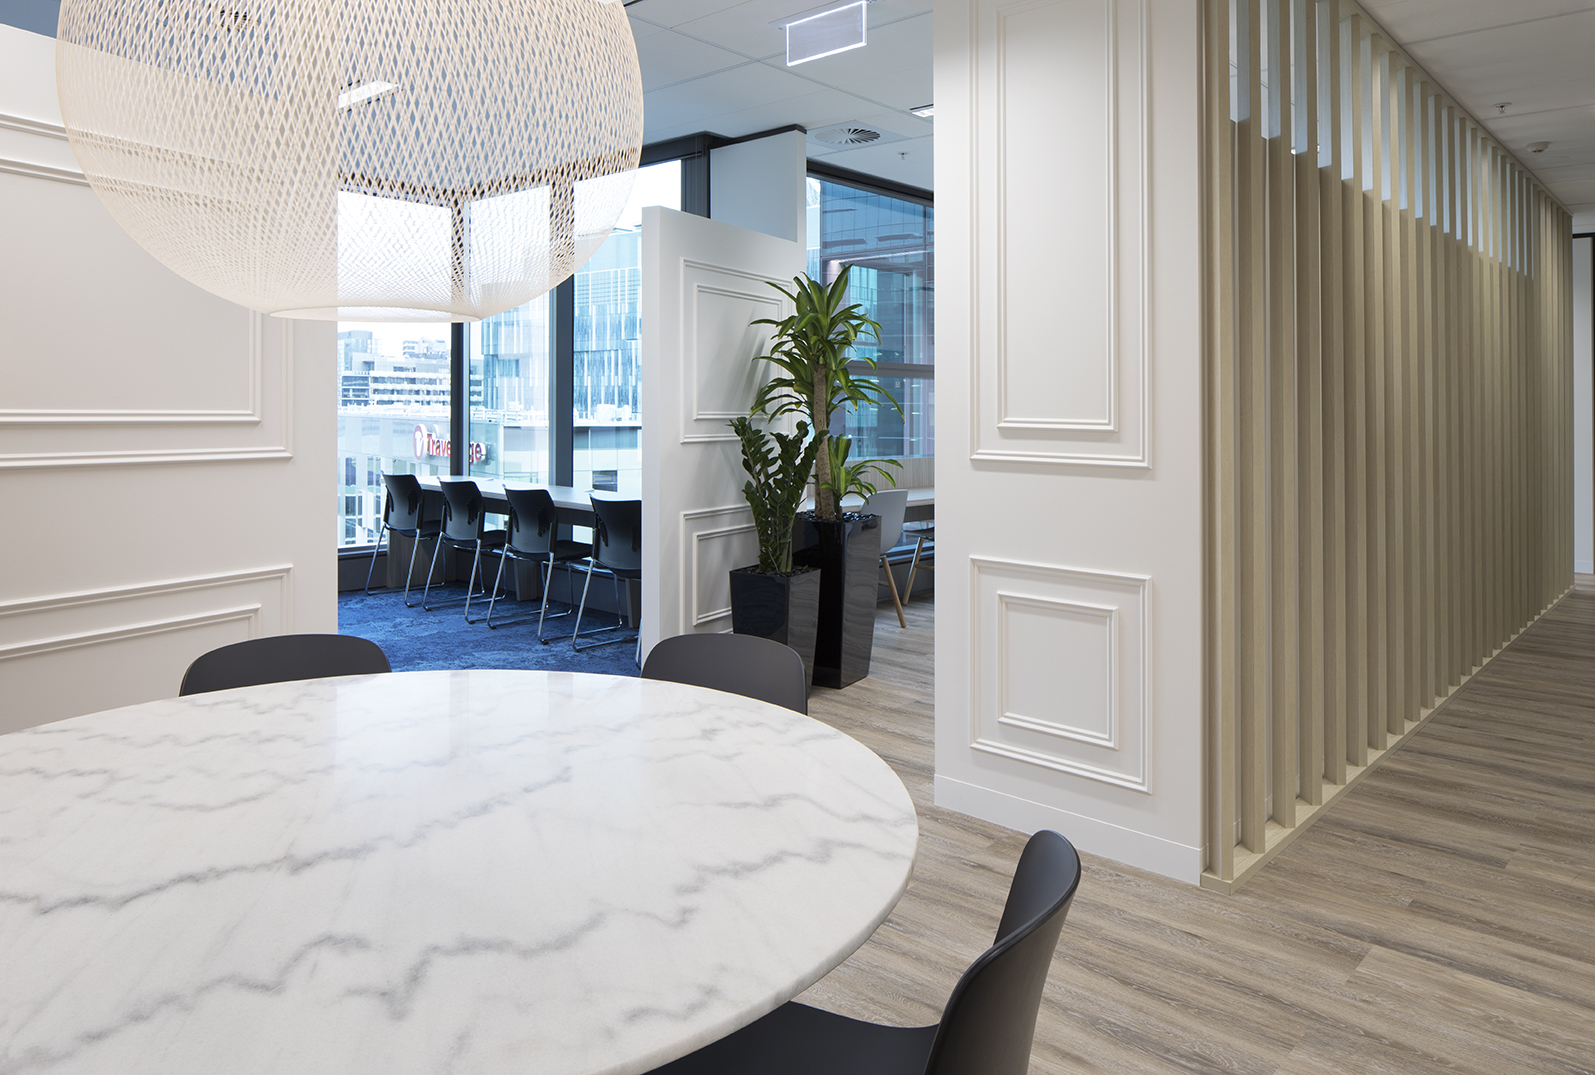 We've designed the space to feature mutliple working areas suitable for a wide range of working styles.